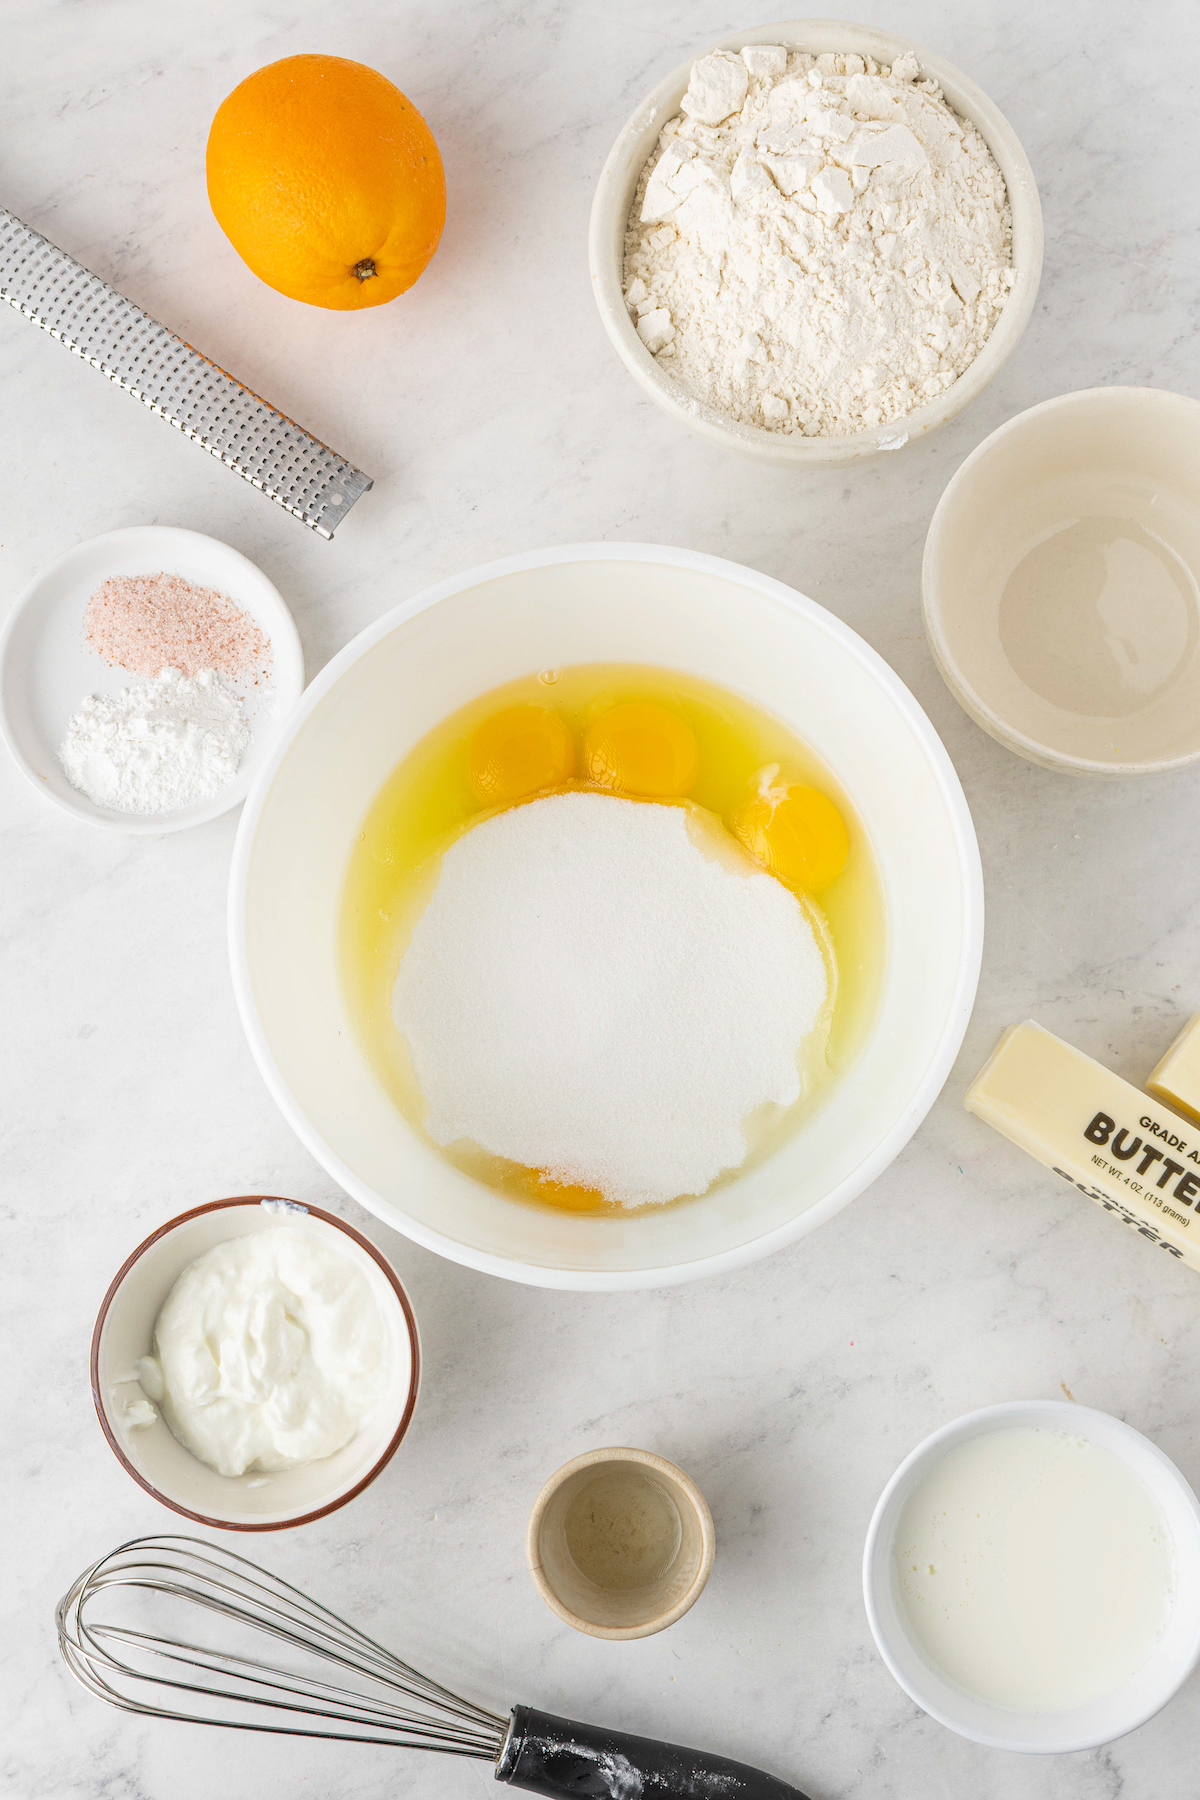 Eggs and sugar in a mixing bowl.